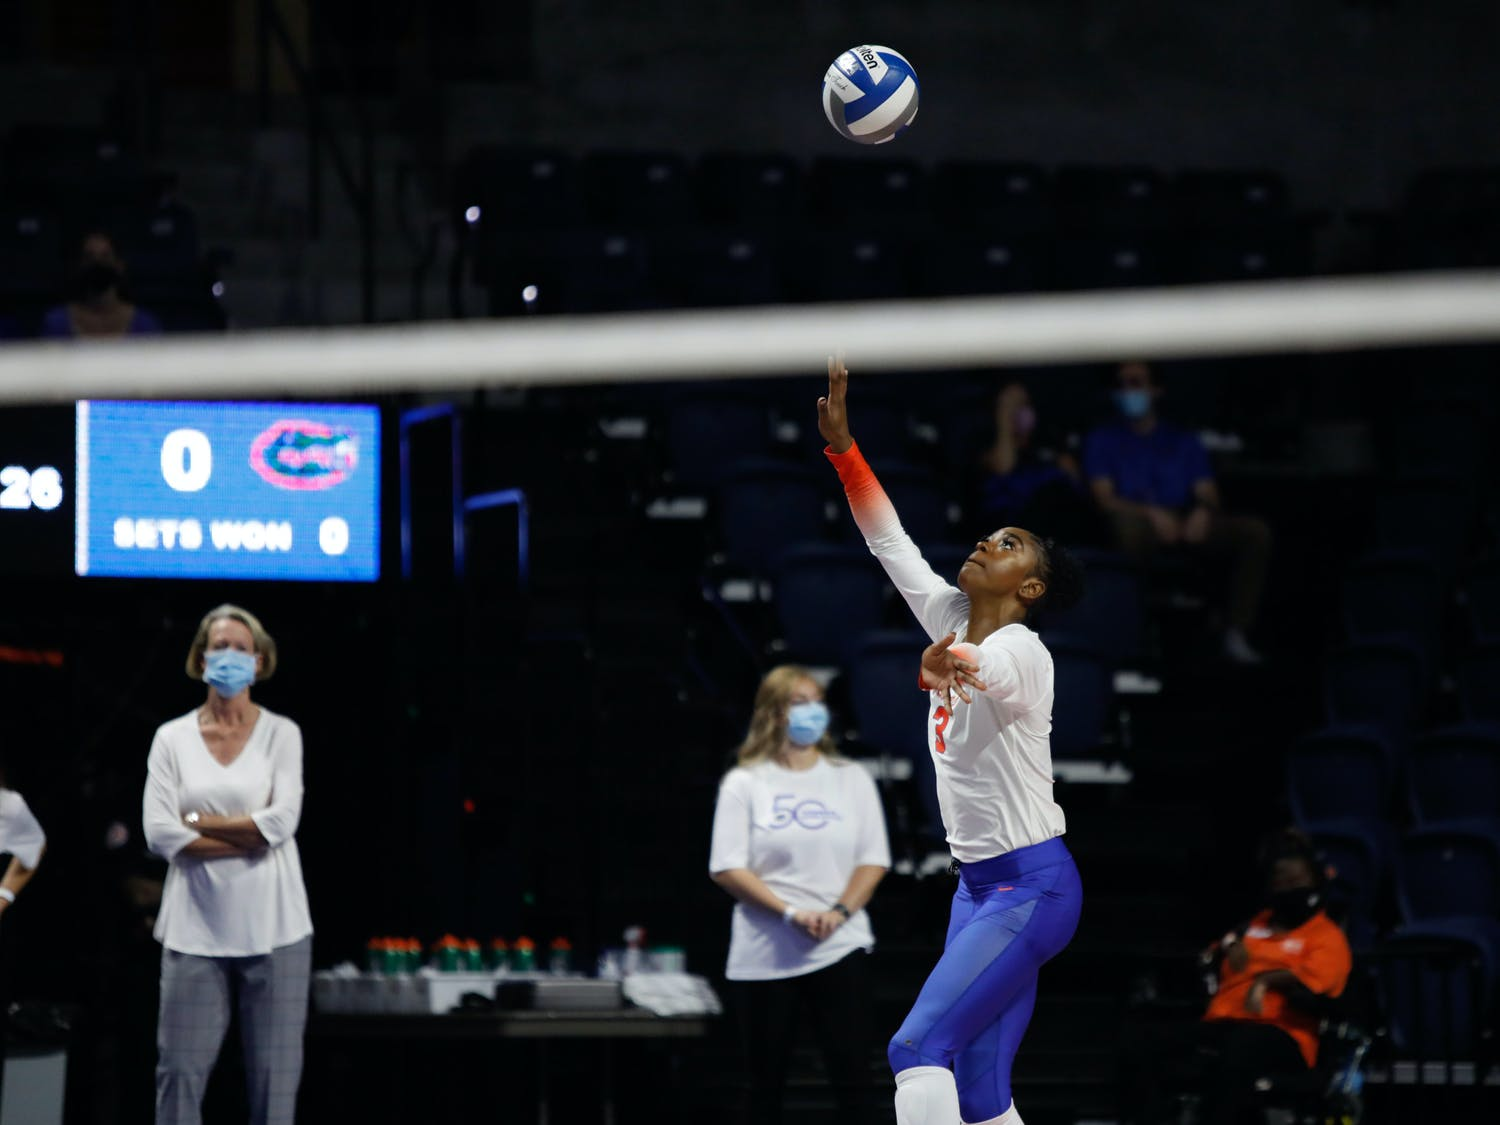 Florida's T'ara Ceasar readies to serve against Mississippi State on Sept. 24.